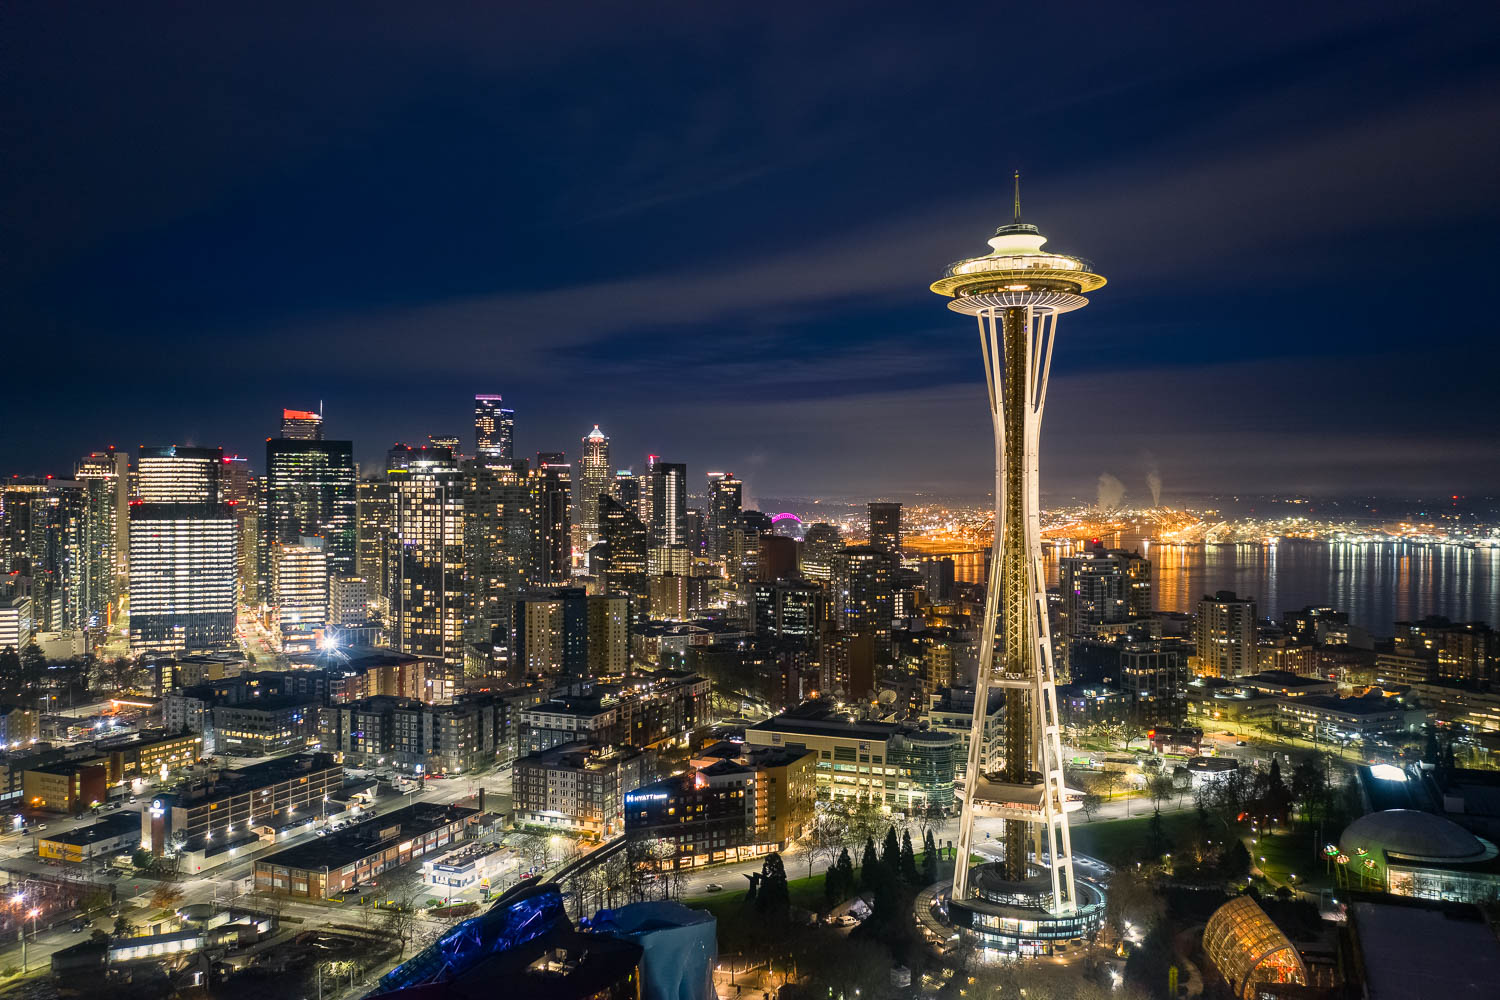 City lights of Seattle skyline and space needle